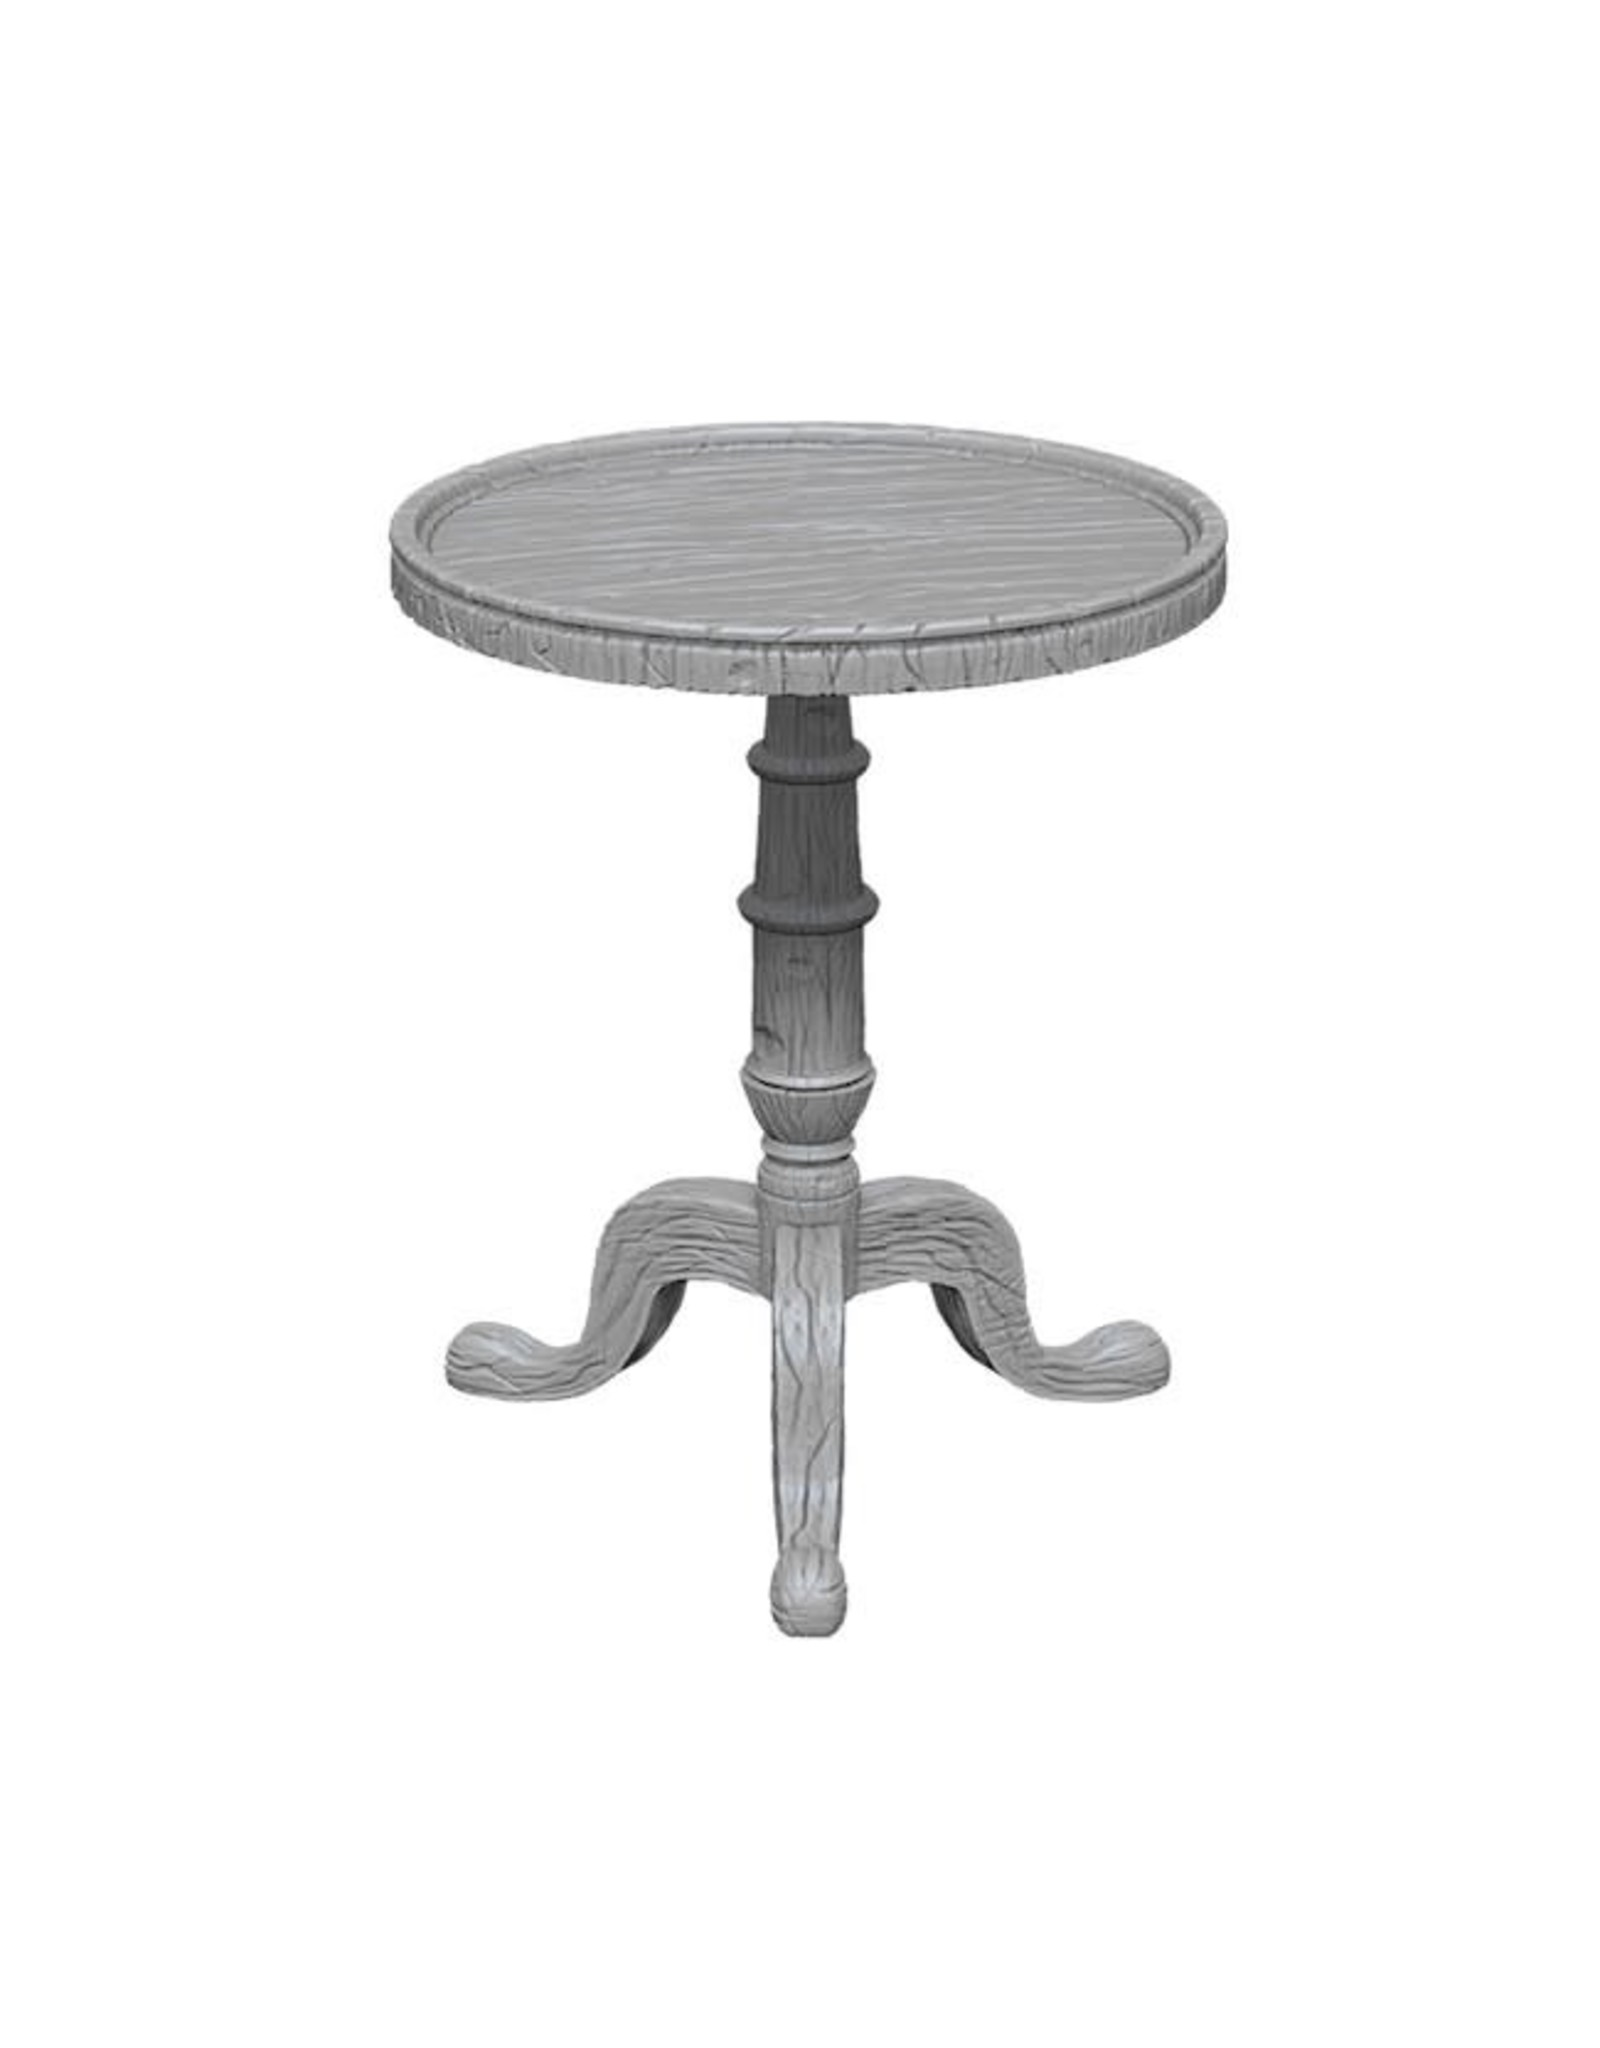 WizKids D&D Minis (unpainted): Small Round Tables Wave 5, 73365